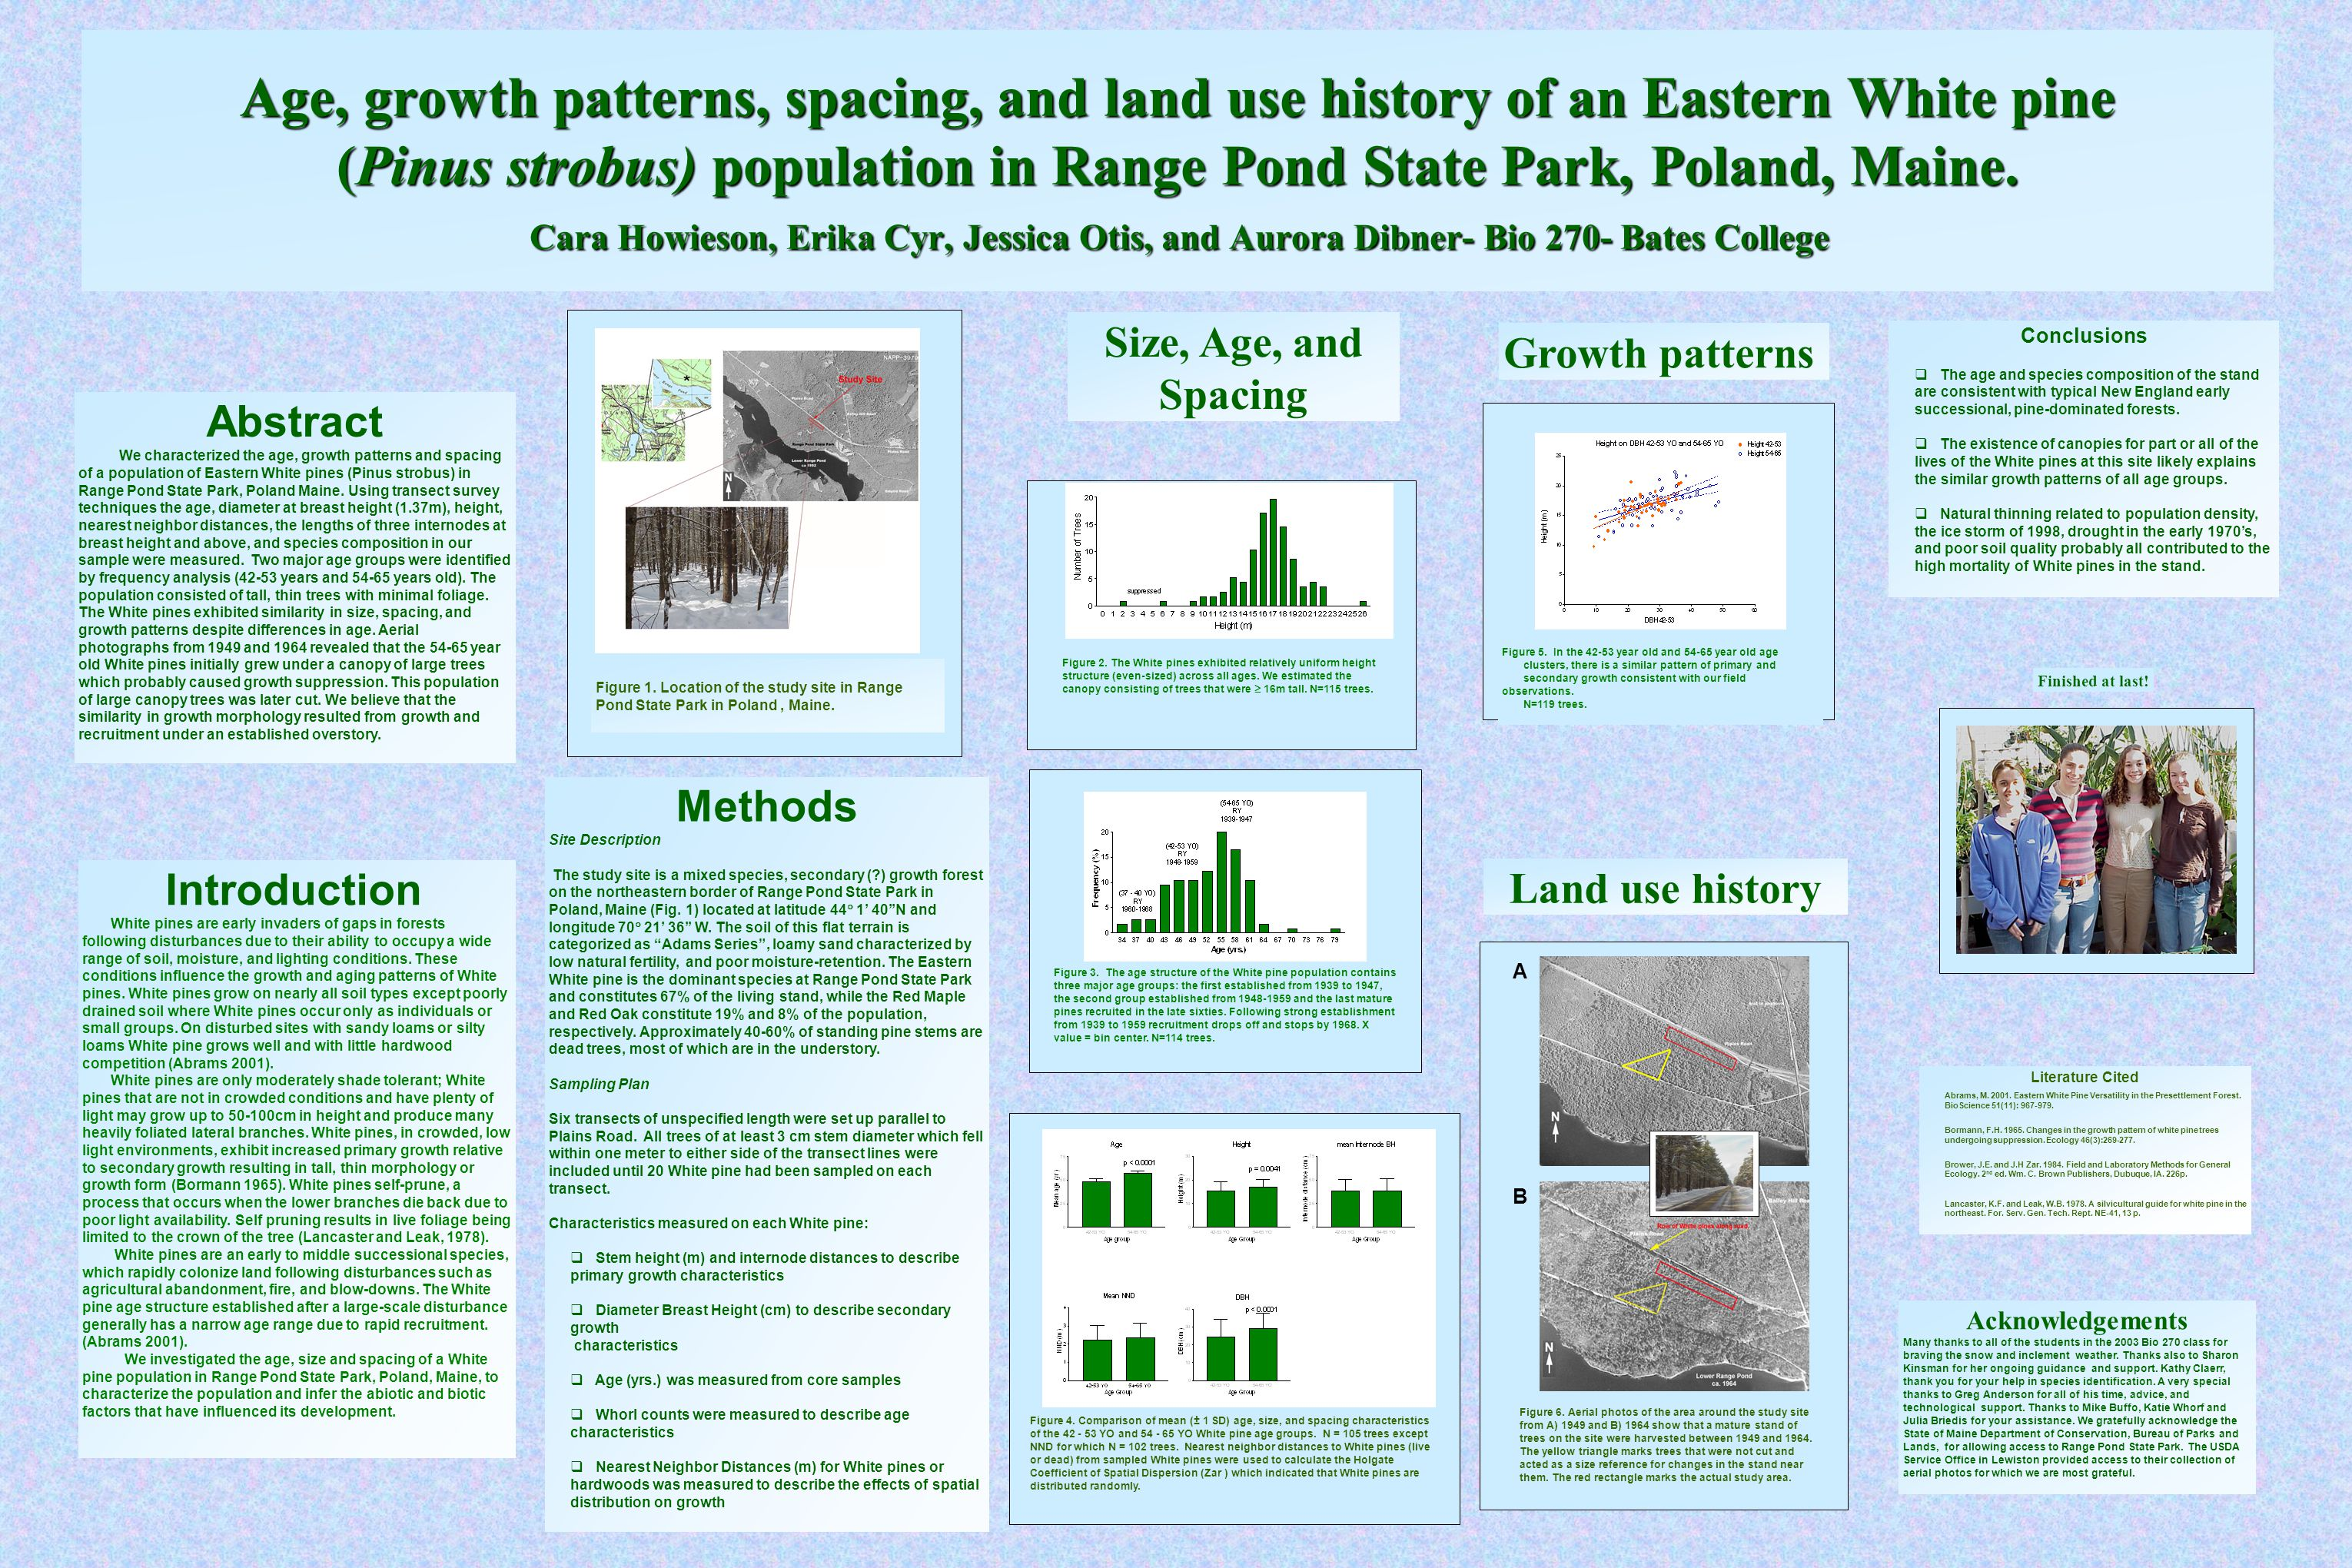 Age, growth patterns, spacing, and land use history of an Eastern White pine (Pinus strobus) population in Range Pond State Park, Poland, Maine. Cara Howieson, Erika Cyr, Jessica Otis, and Aurora Dibner- Bio 270- Bates College